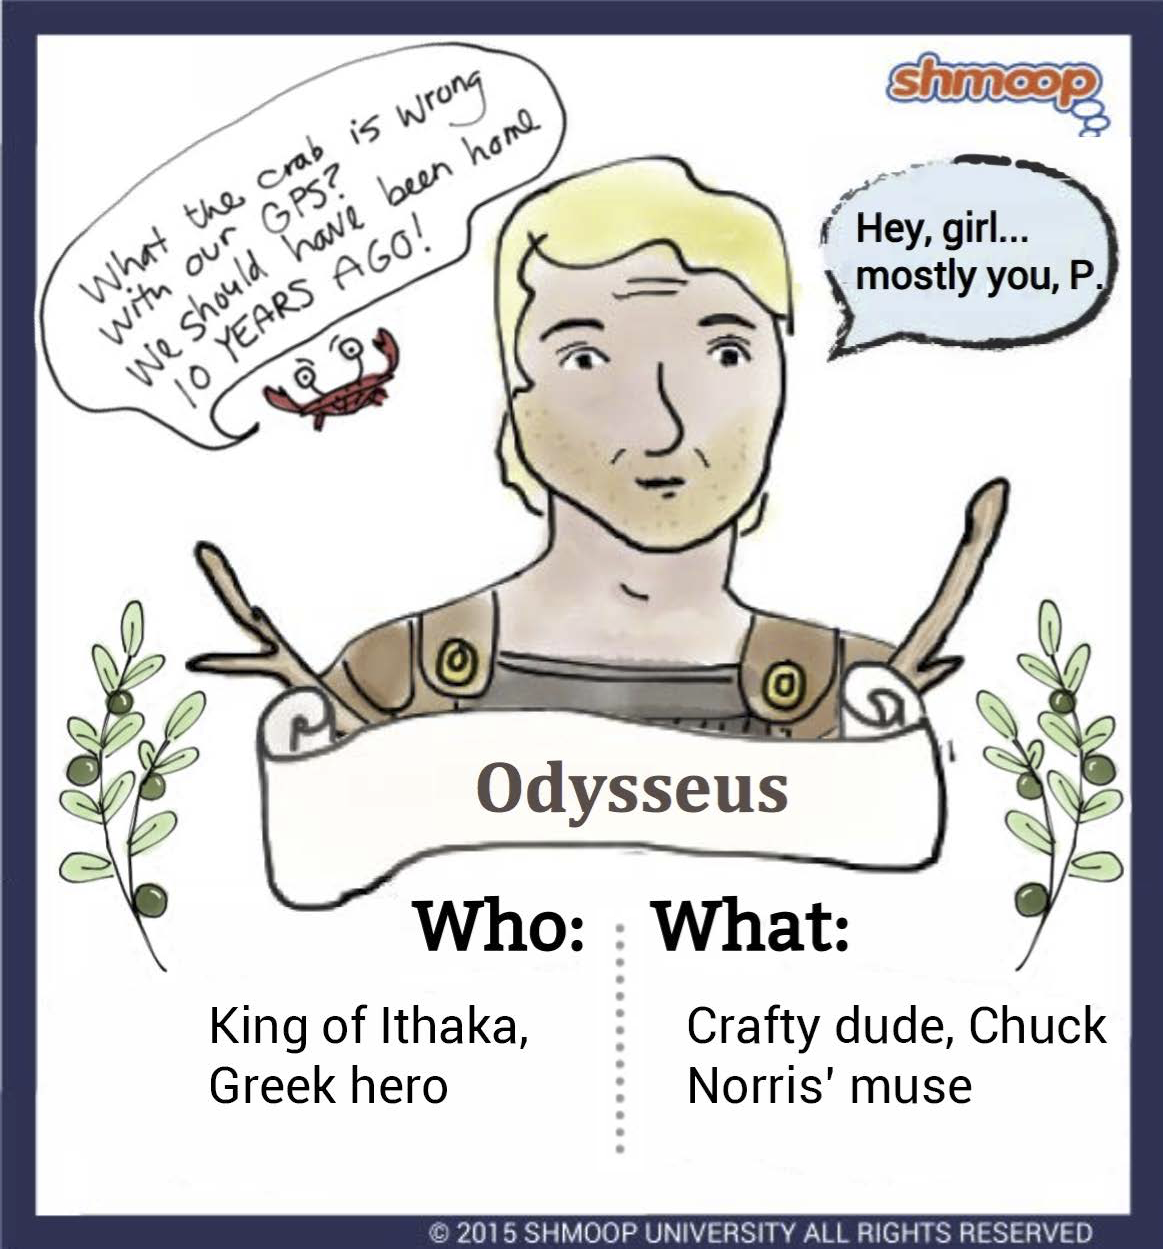 a literary analysis of eurymakos in the odyssey by homer Literary devices in the odyssey  along with homer's iliad, the odyssey is one  of ancient greece's two great epics  booker's seven basic plots analysis.